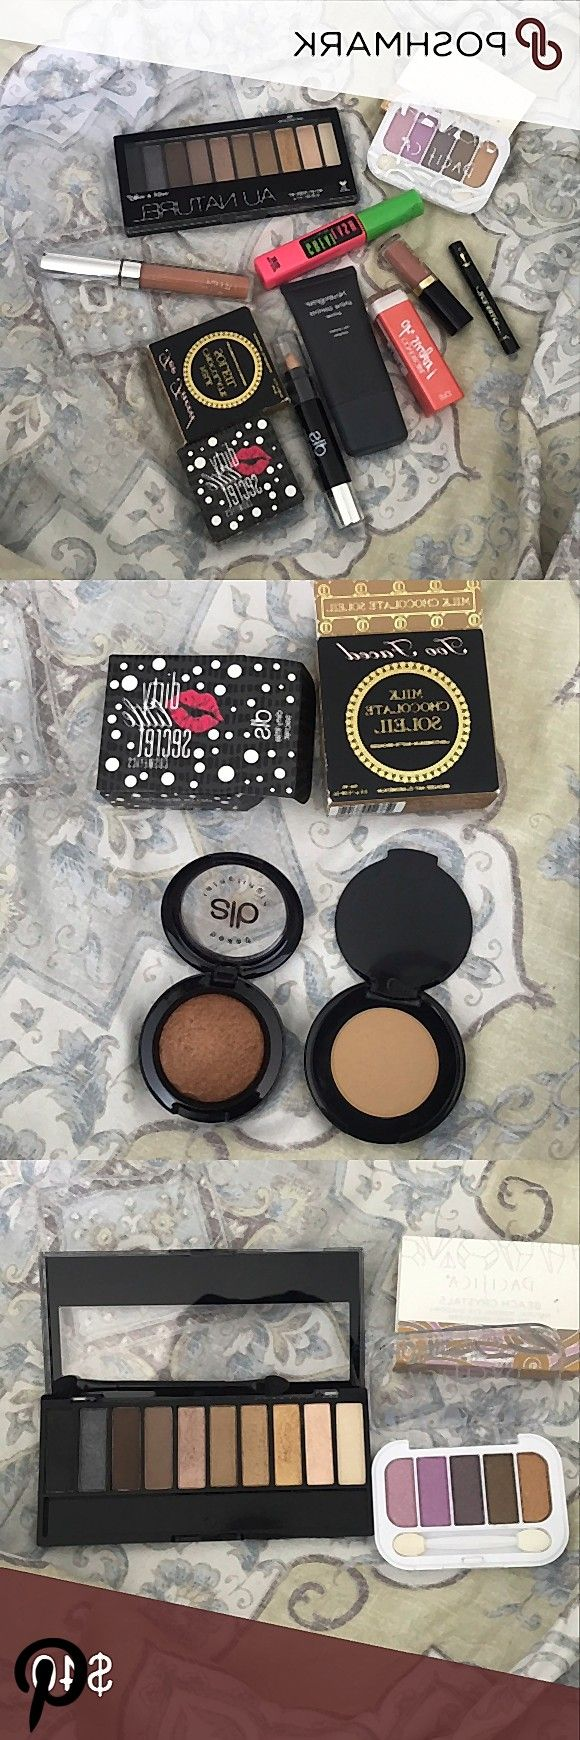 Lot of makeup 11 quality items great brands !!! Mix of